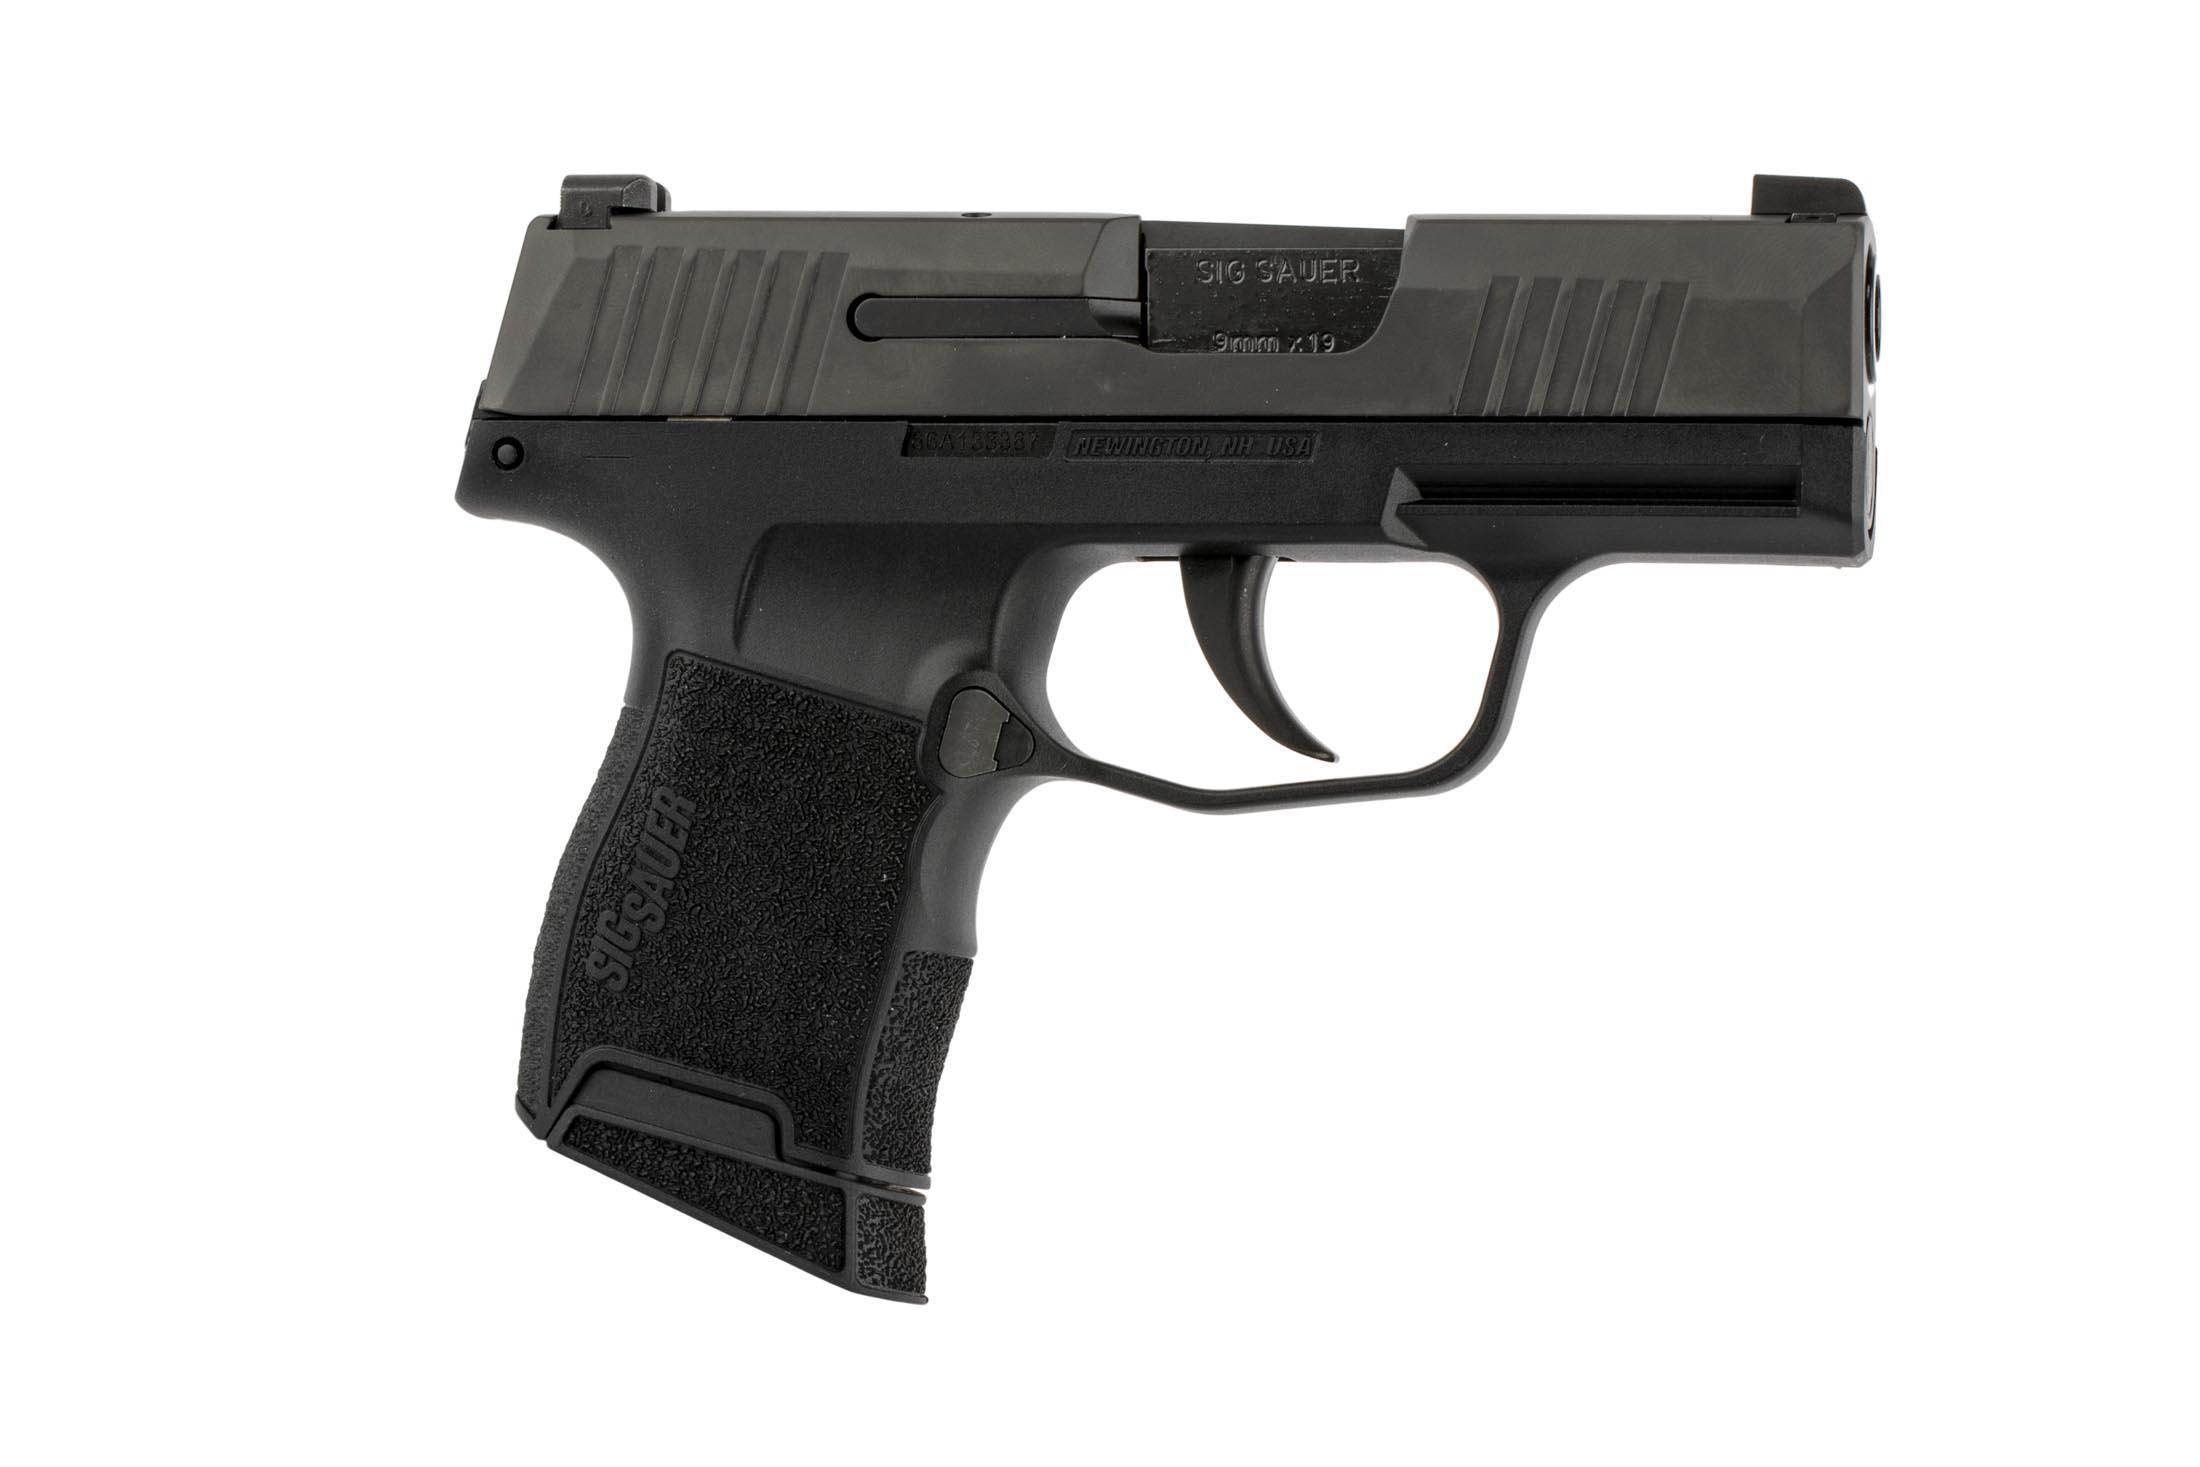 SIG Sauer P365 9mm compact 9mm handgun is equipped with tritium enhanced three-dot night sights.